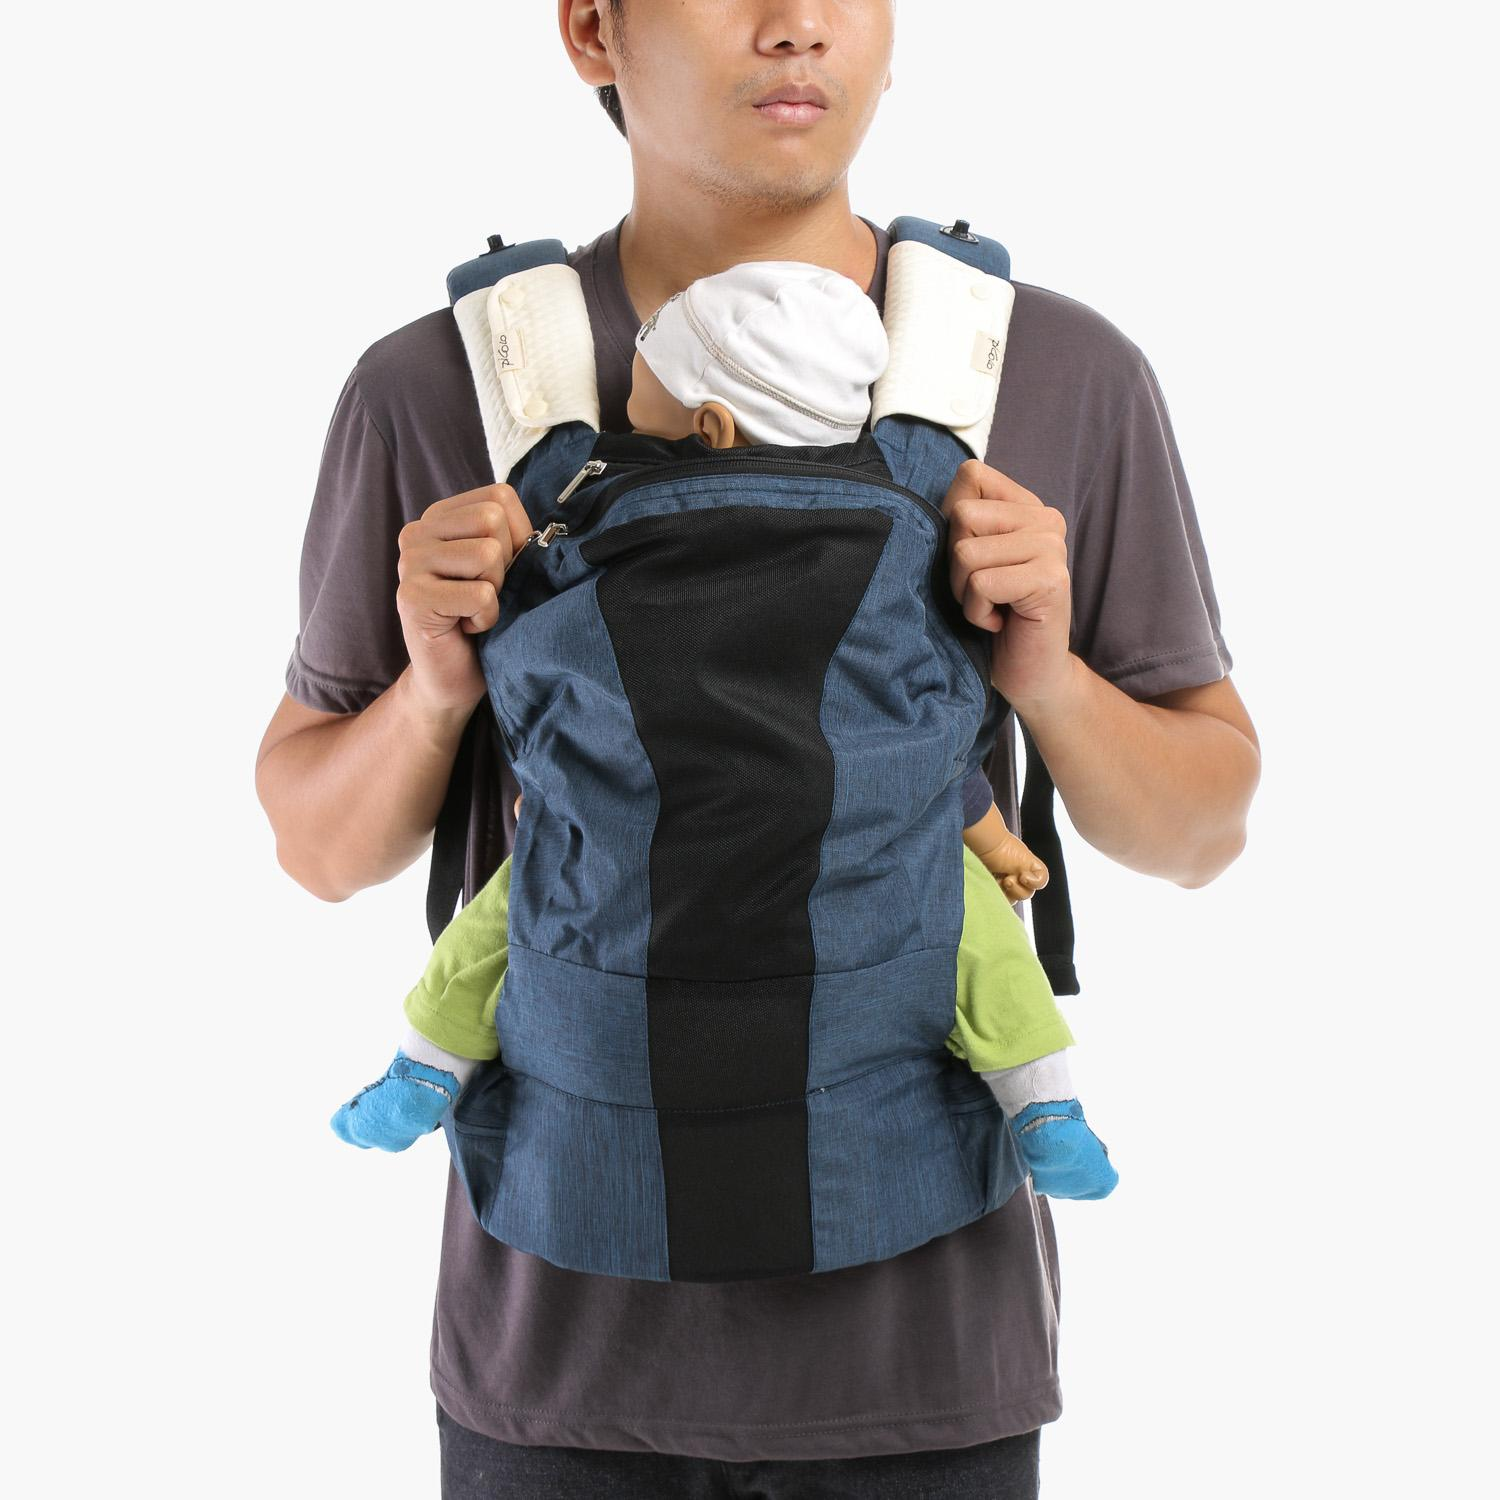 a43b74b7fa4 Baby Carrier for sale - Baby Wrap Carrier online brands